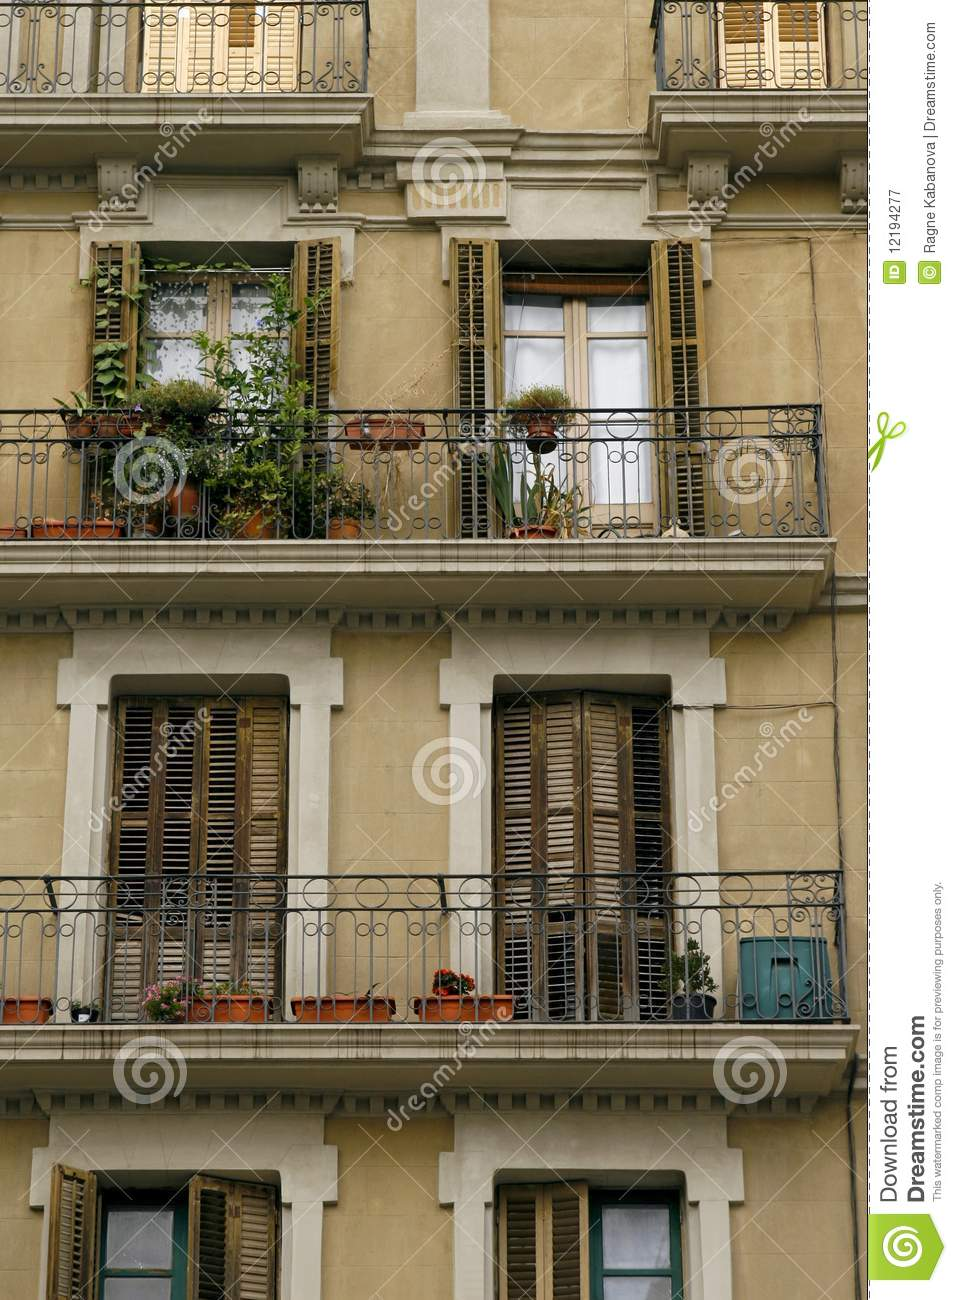 Facade of an old house in barcelona spain royalty free for Classic house facades